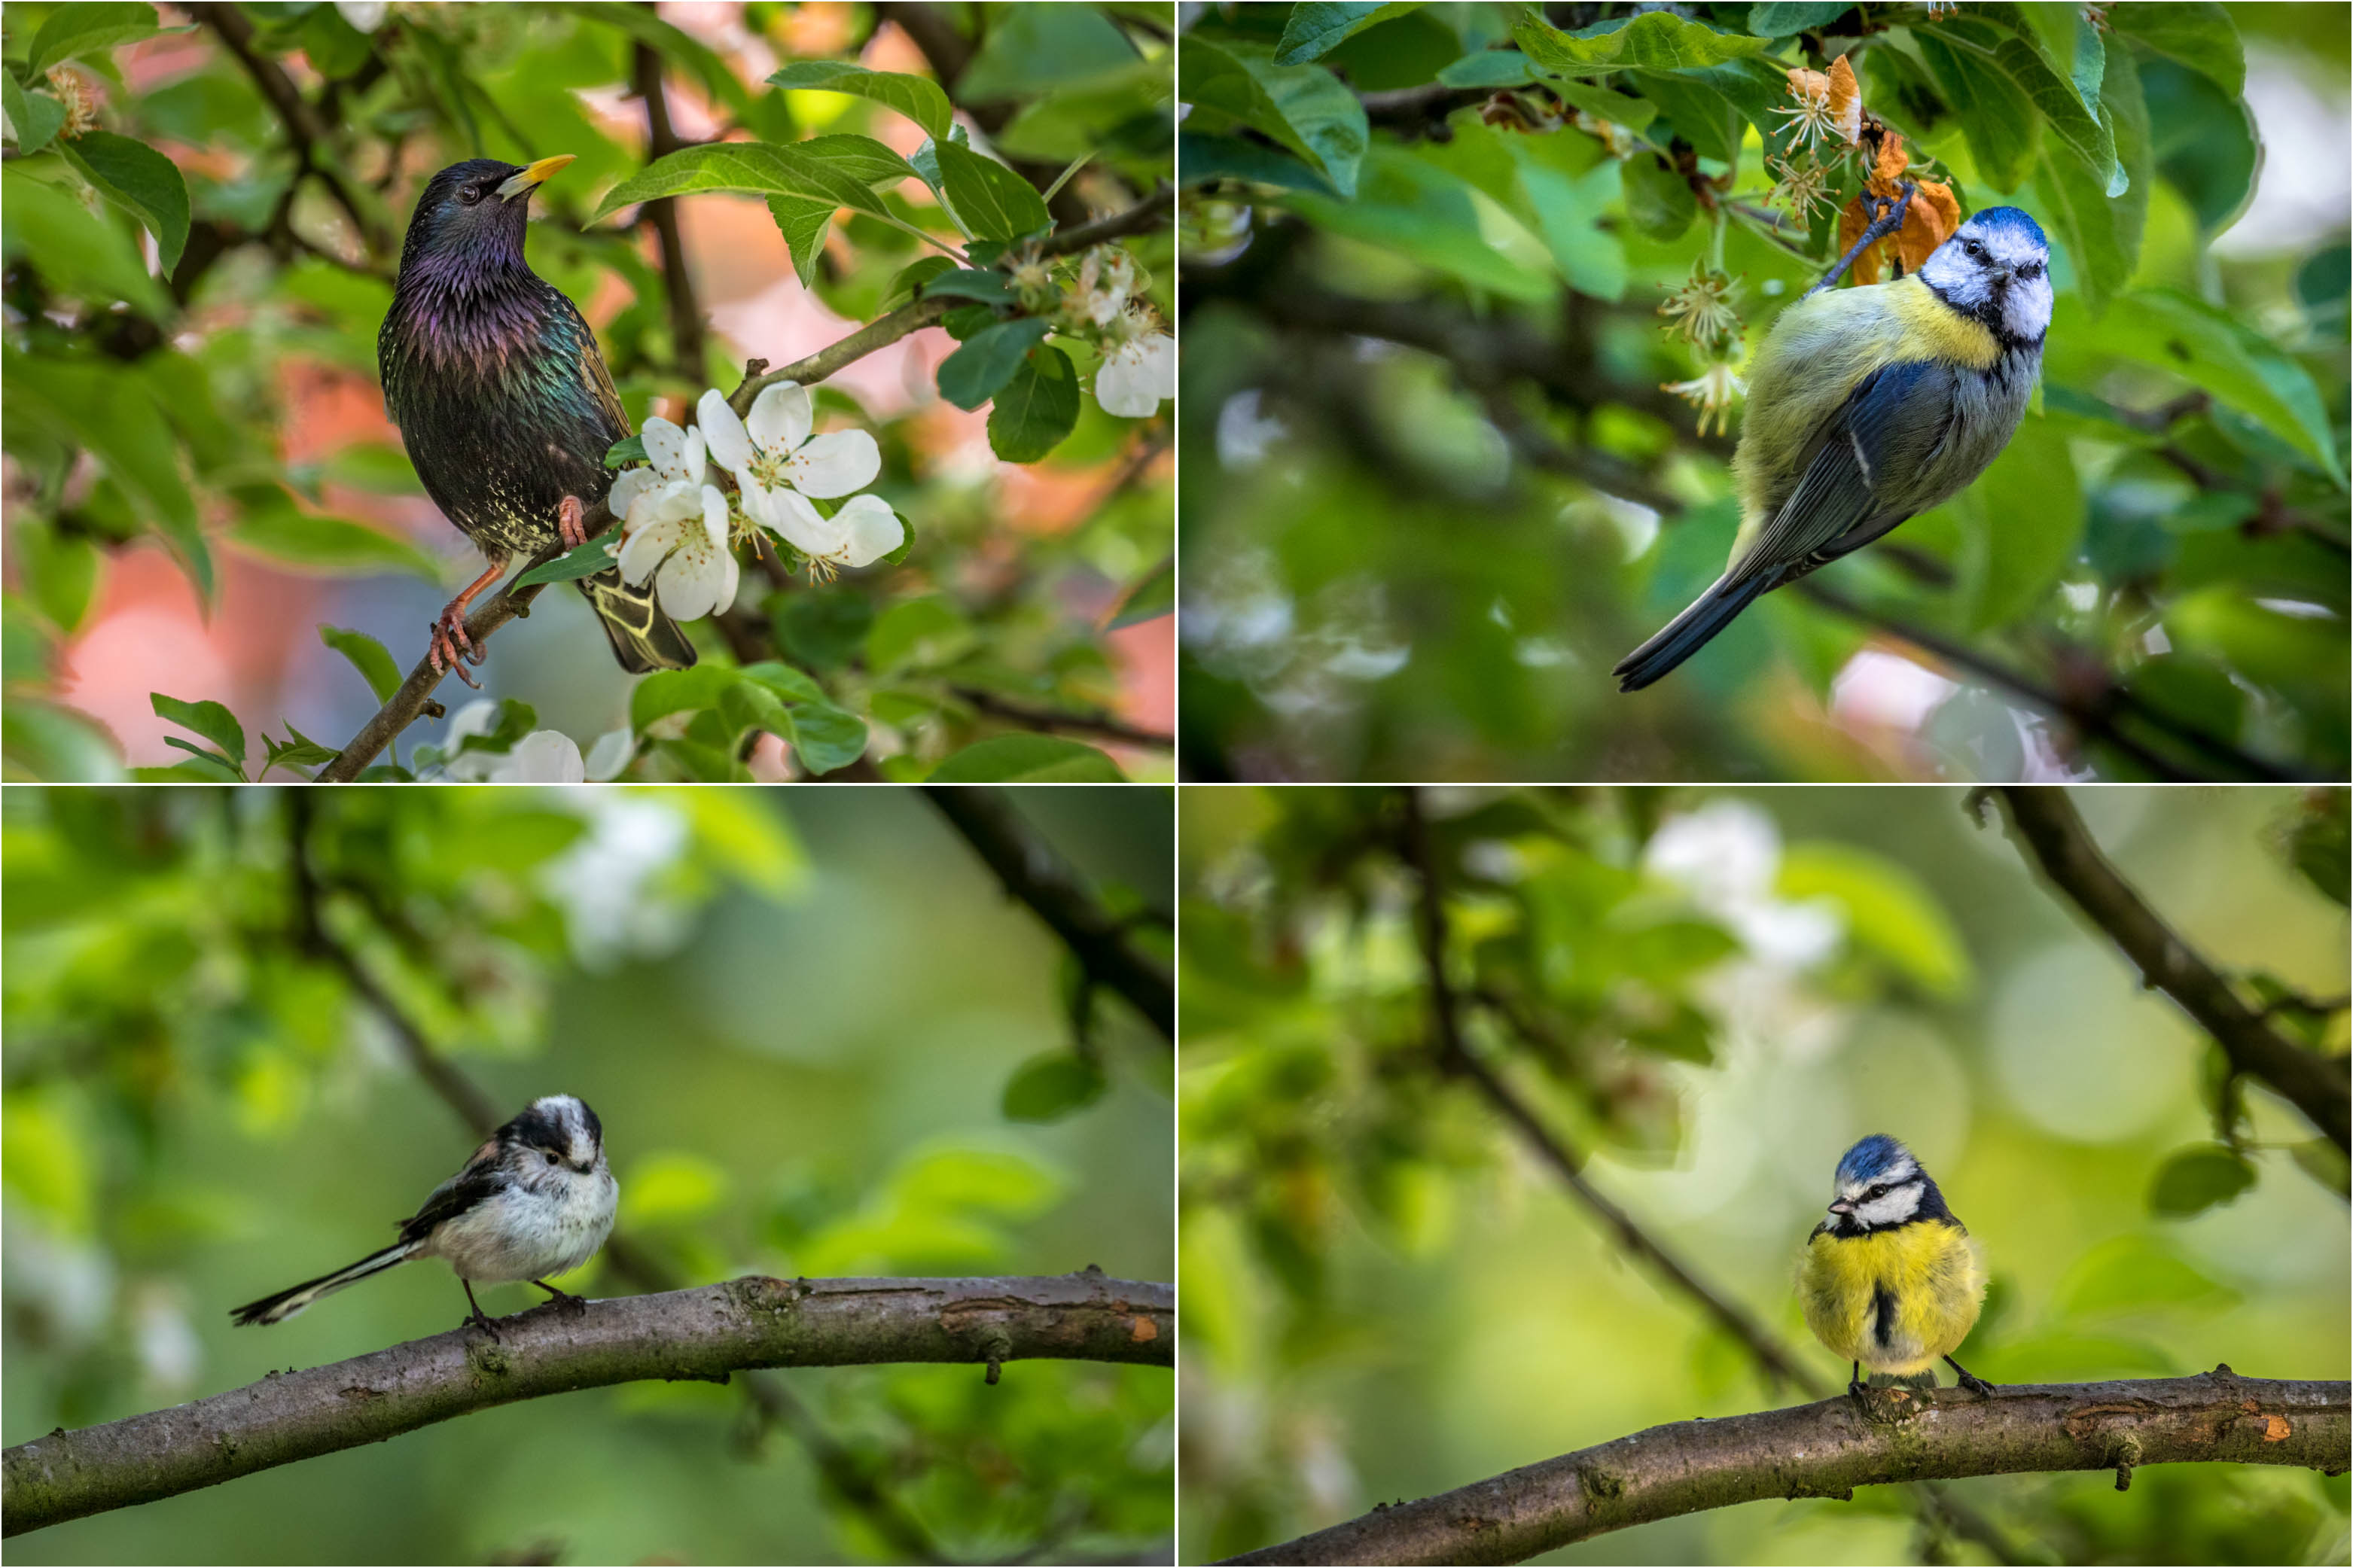 Starling, blue tit, long tailed tit and blue tit